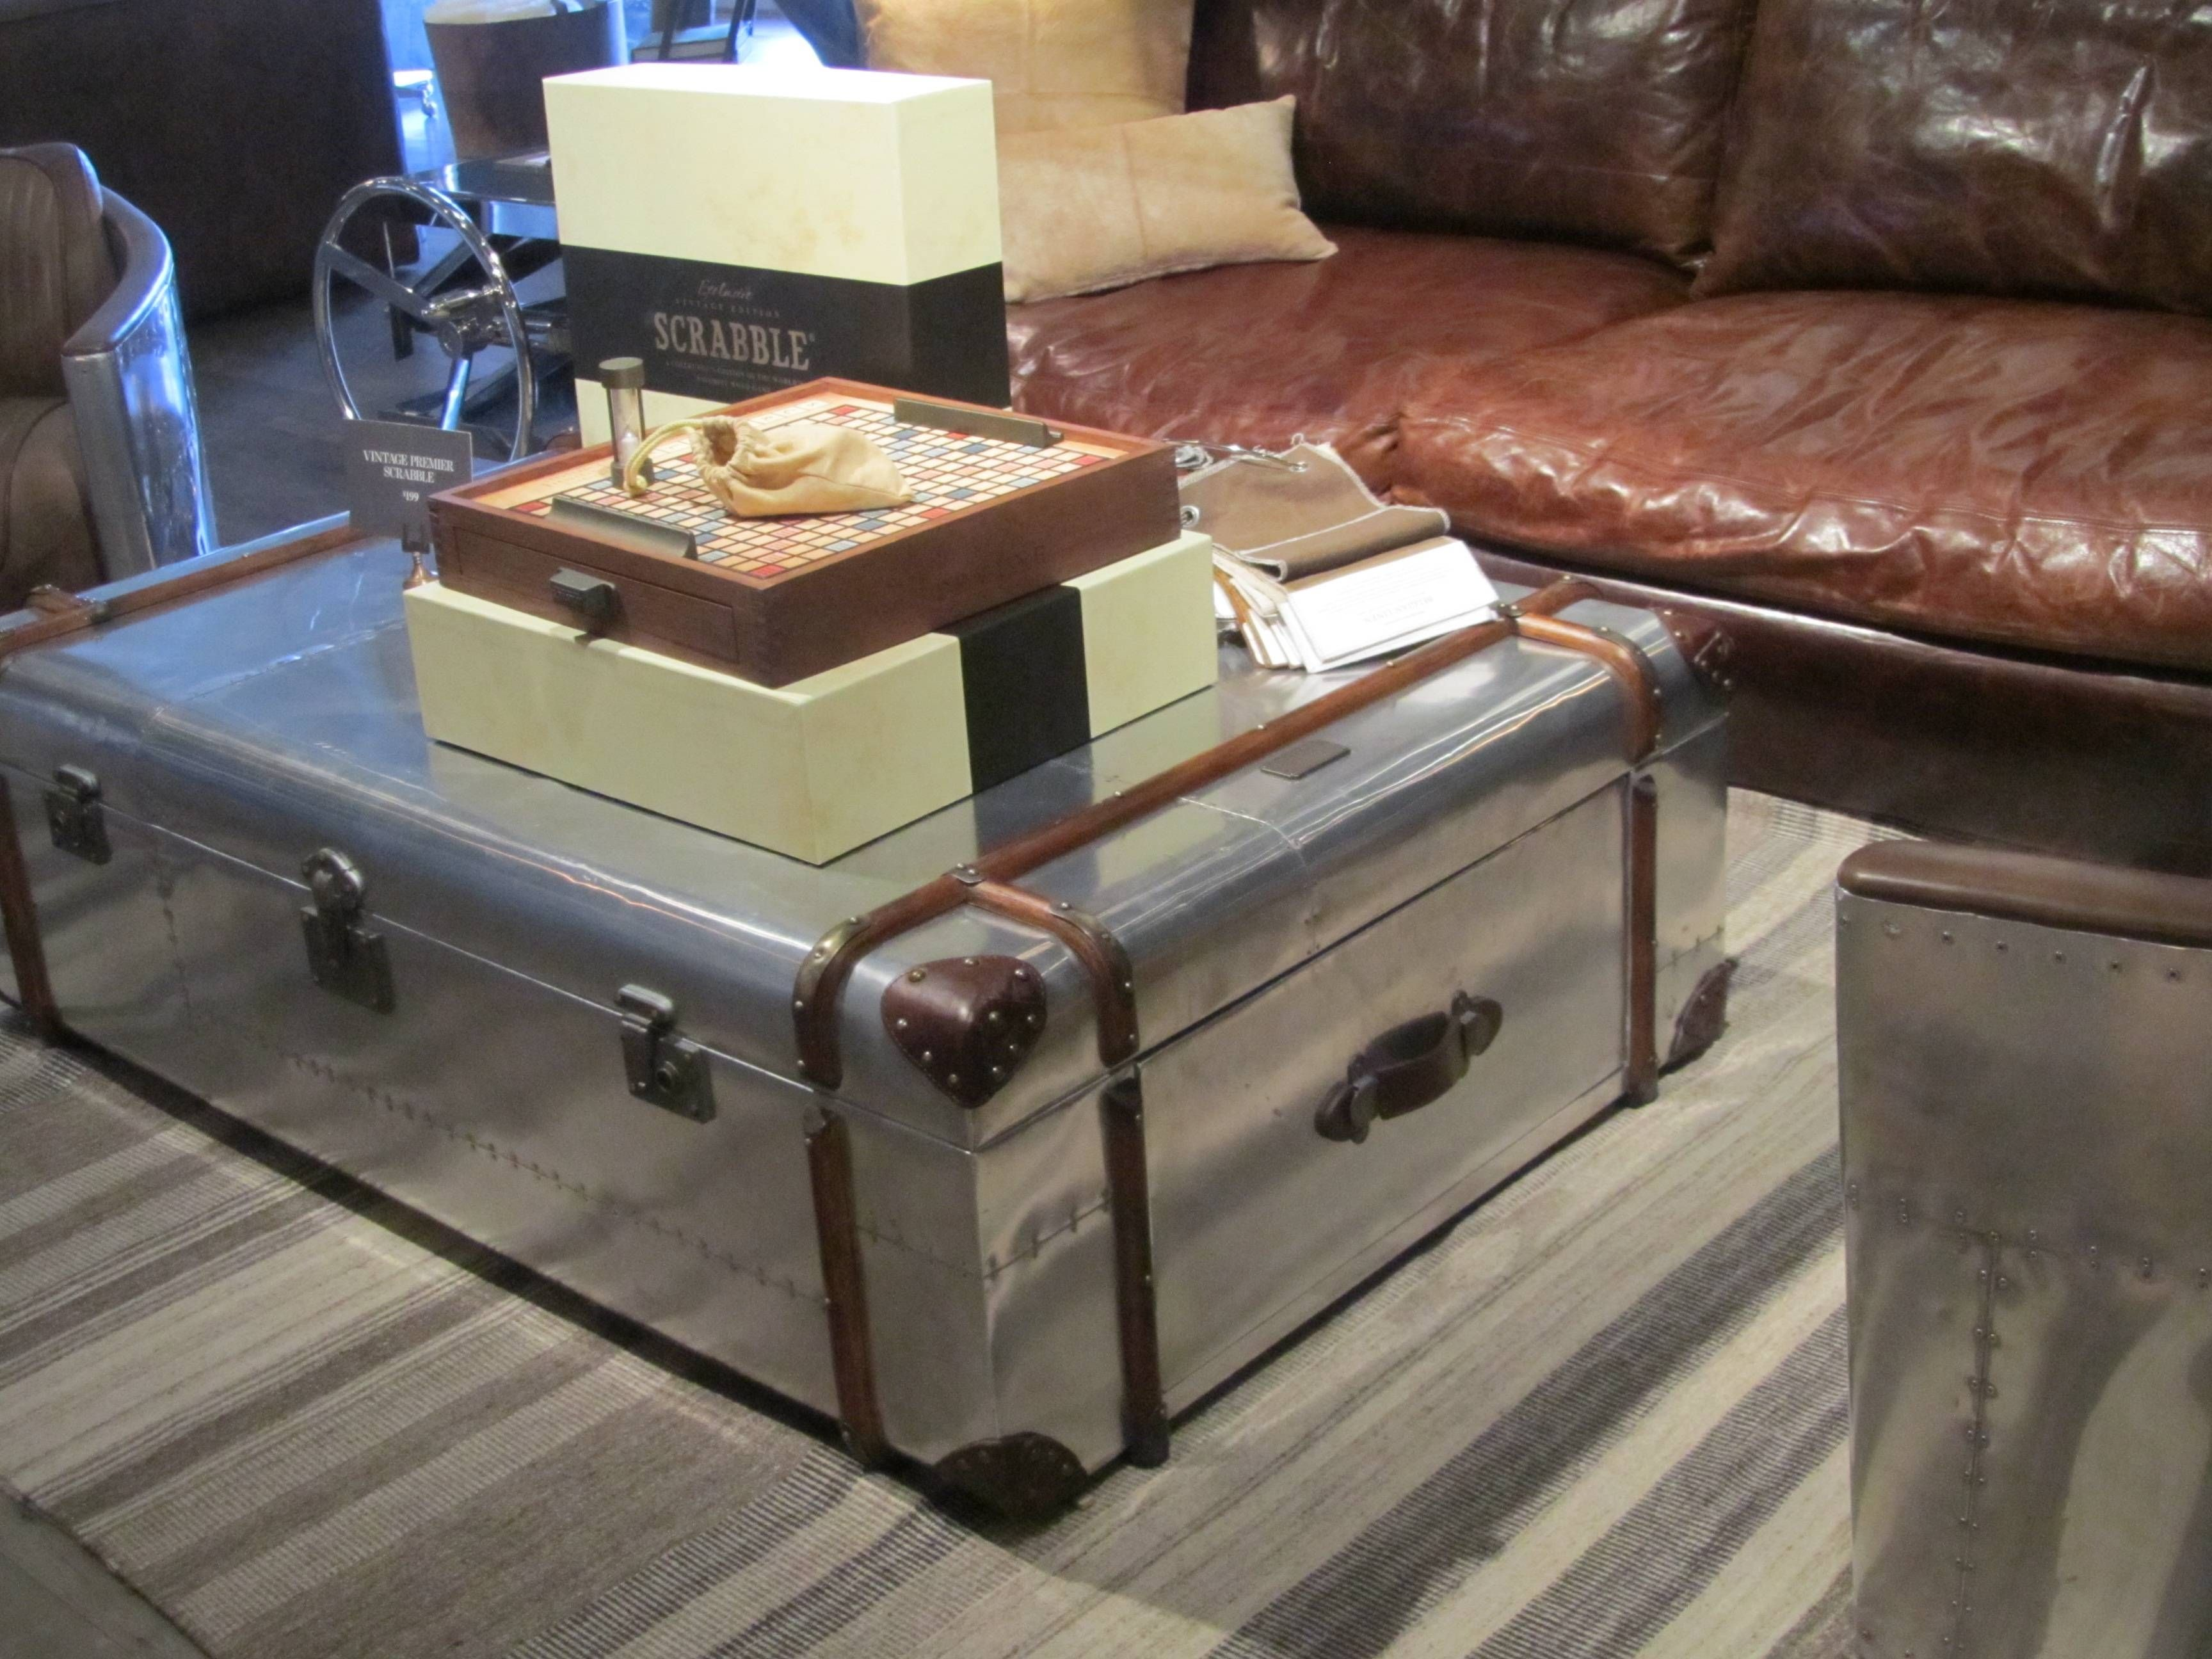 Silver Trunk Coffee Tables In 2021 Coffee Table Trunk Homemade Coffee Tables Coffee Table Design Modern [ 2592 x 3456 Pixel ]